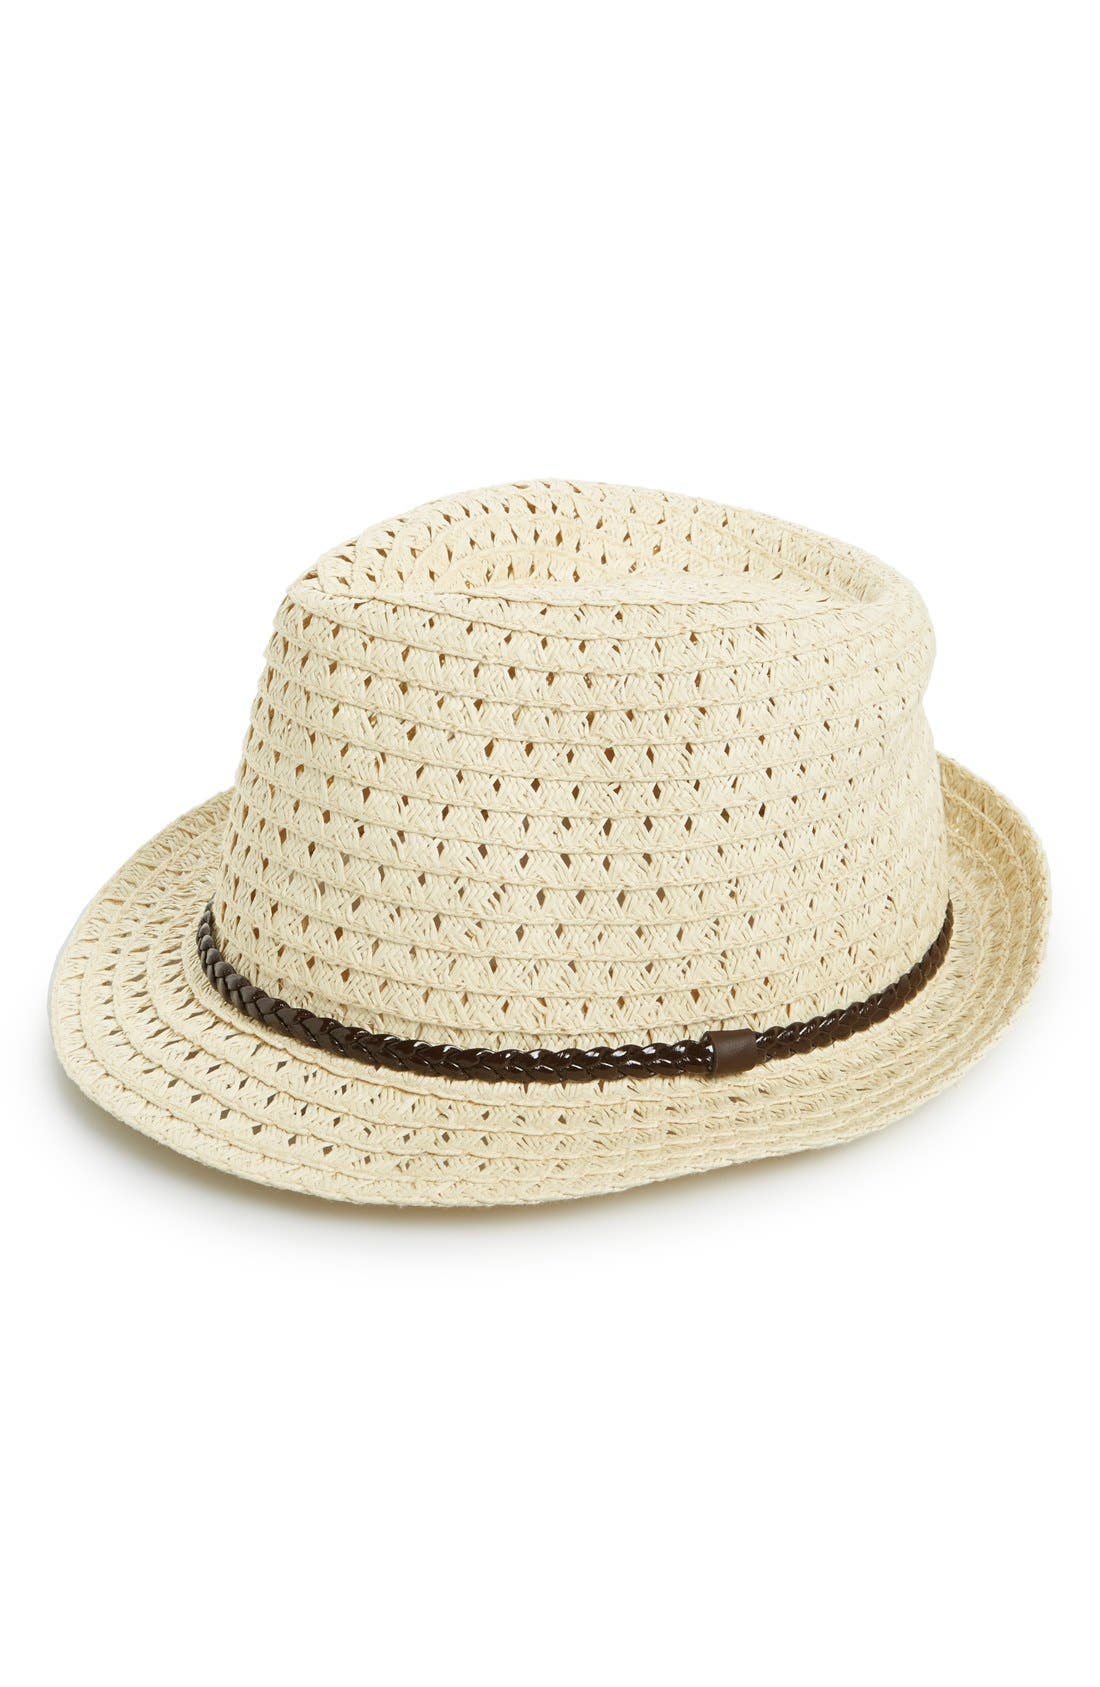 Alternate Image 1 Selected - BP. Open Weave Straw Fedora